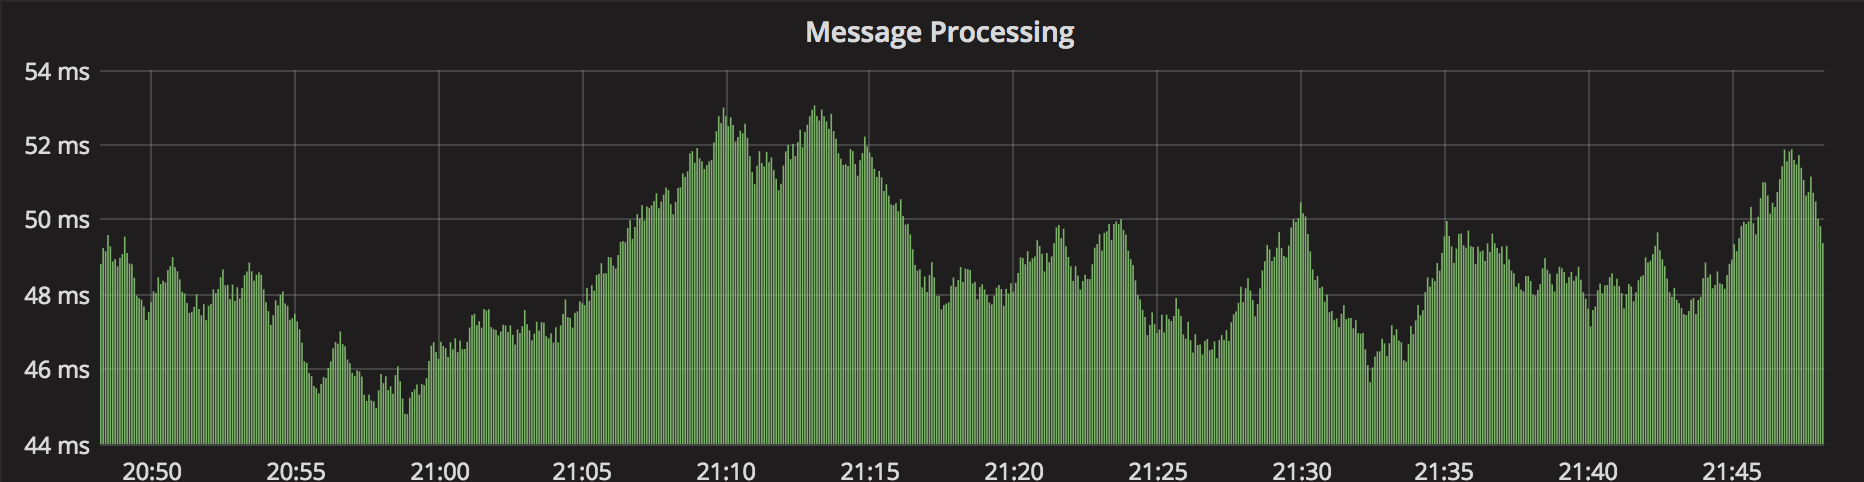 Timer showing how long it takes to process messages